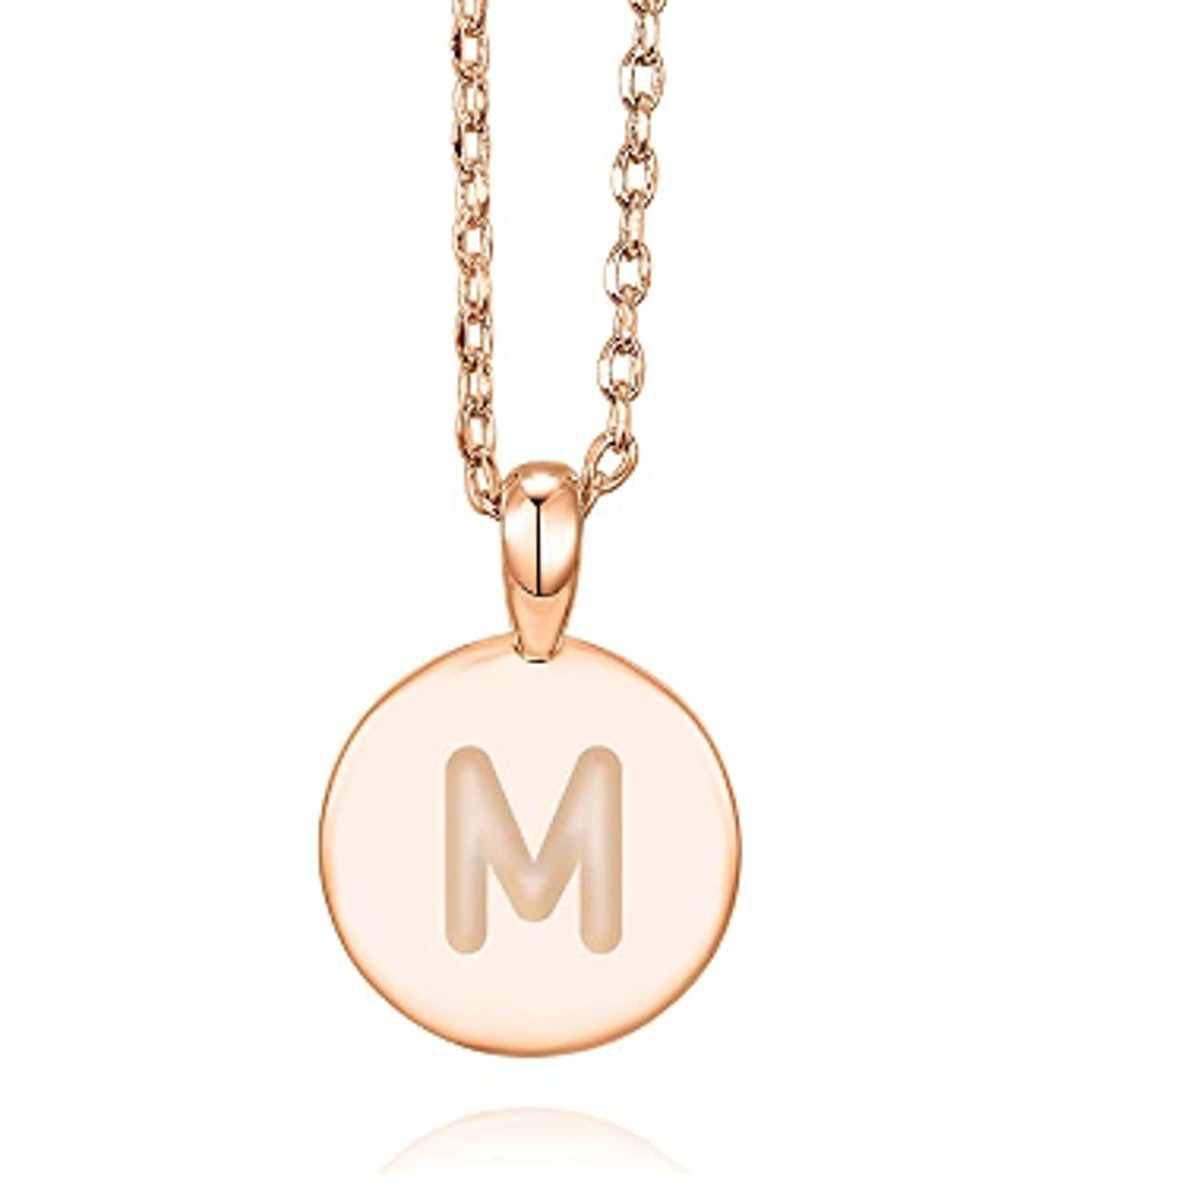 PAVOI Rose Gold Plated Letter Necklace